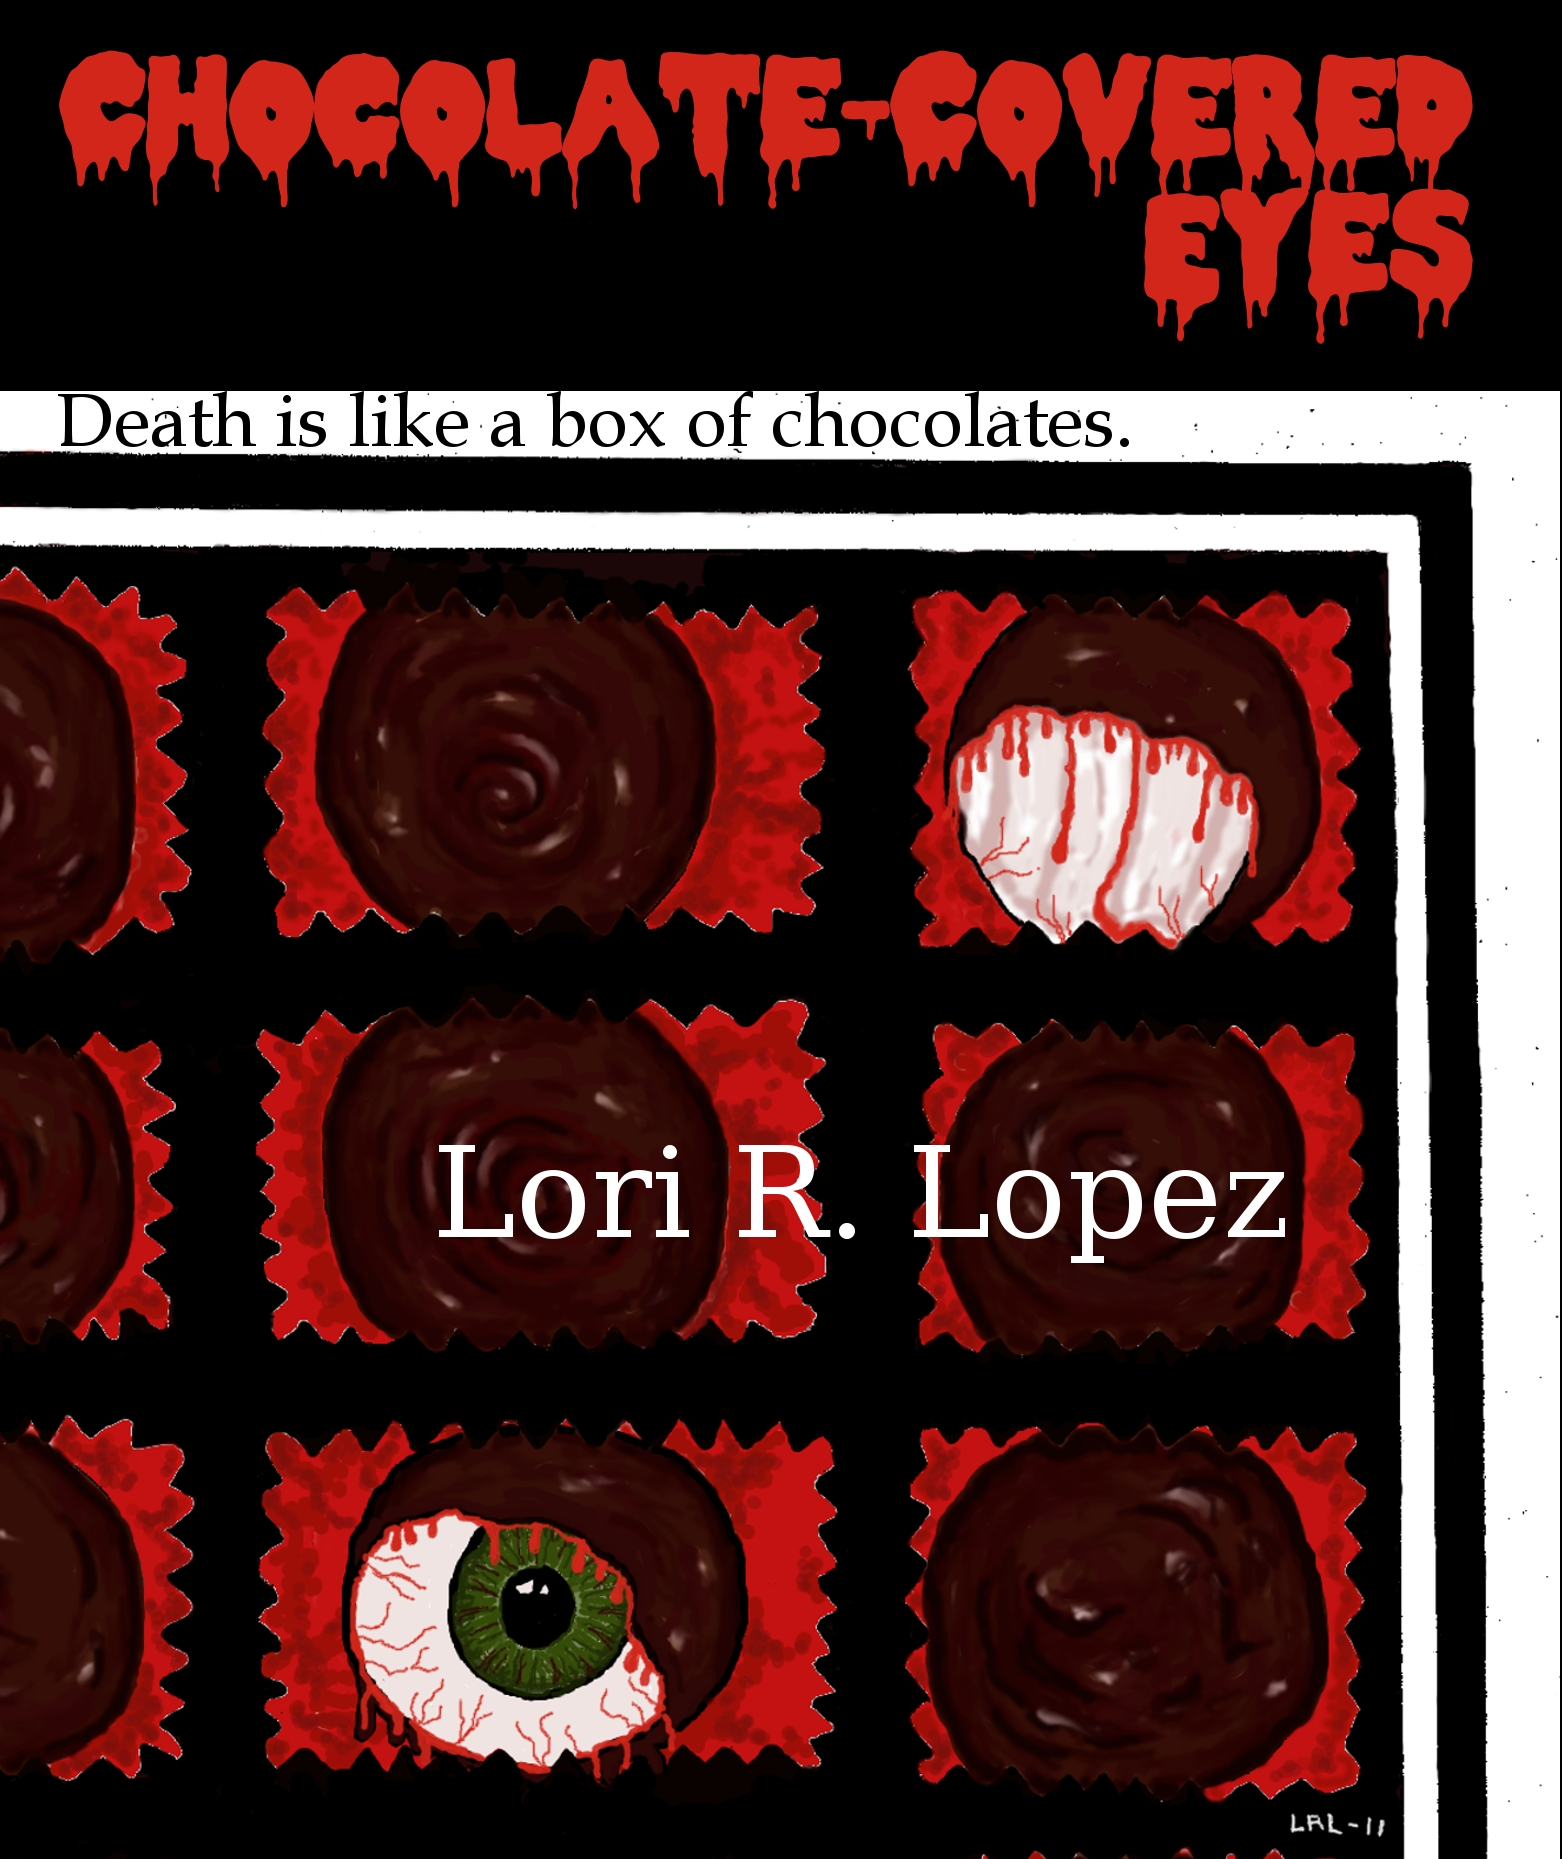 chocolate-covered-eyes-finished-cover-0a1f3620bcbc668d42a378796862175bebaab19b